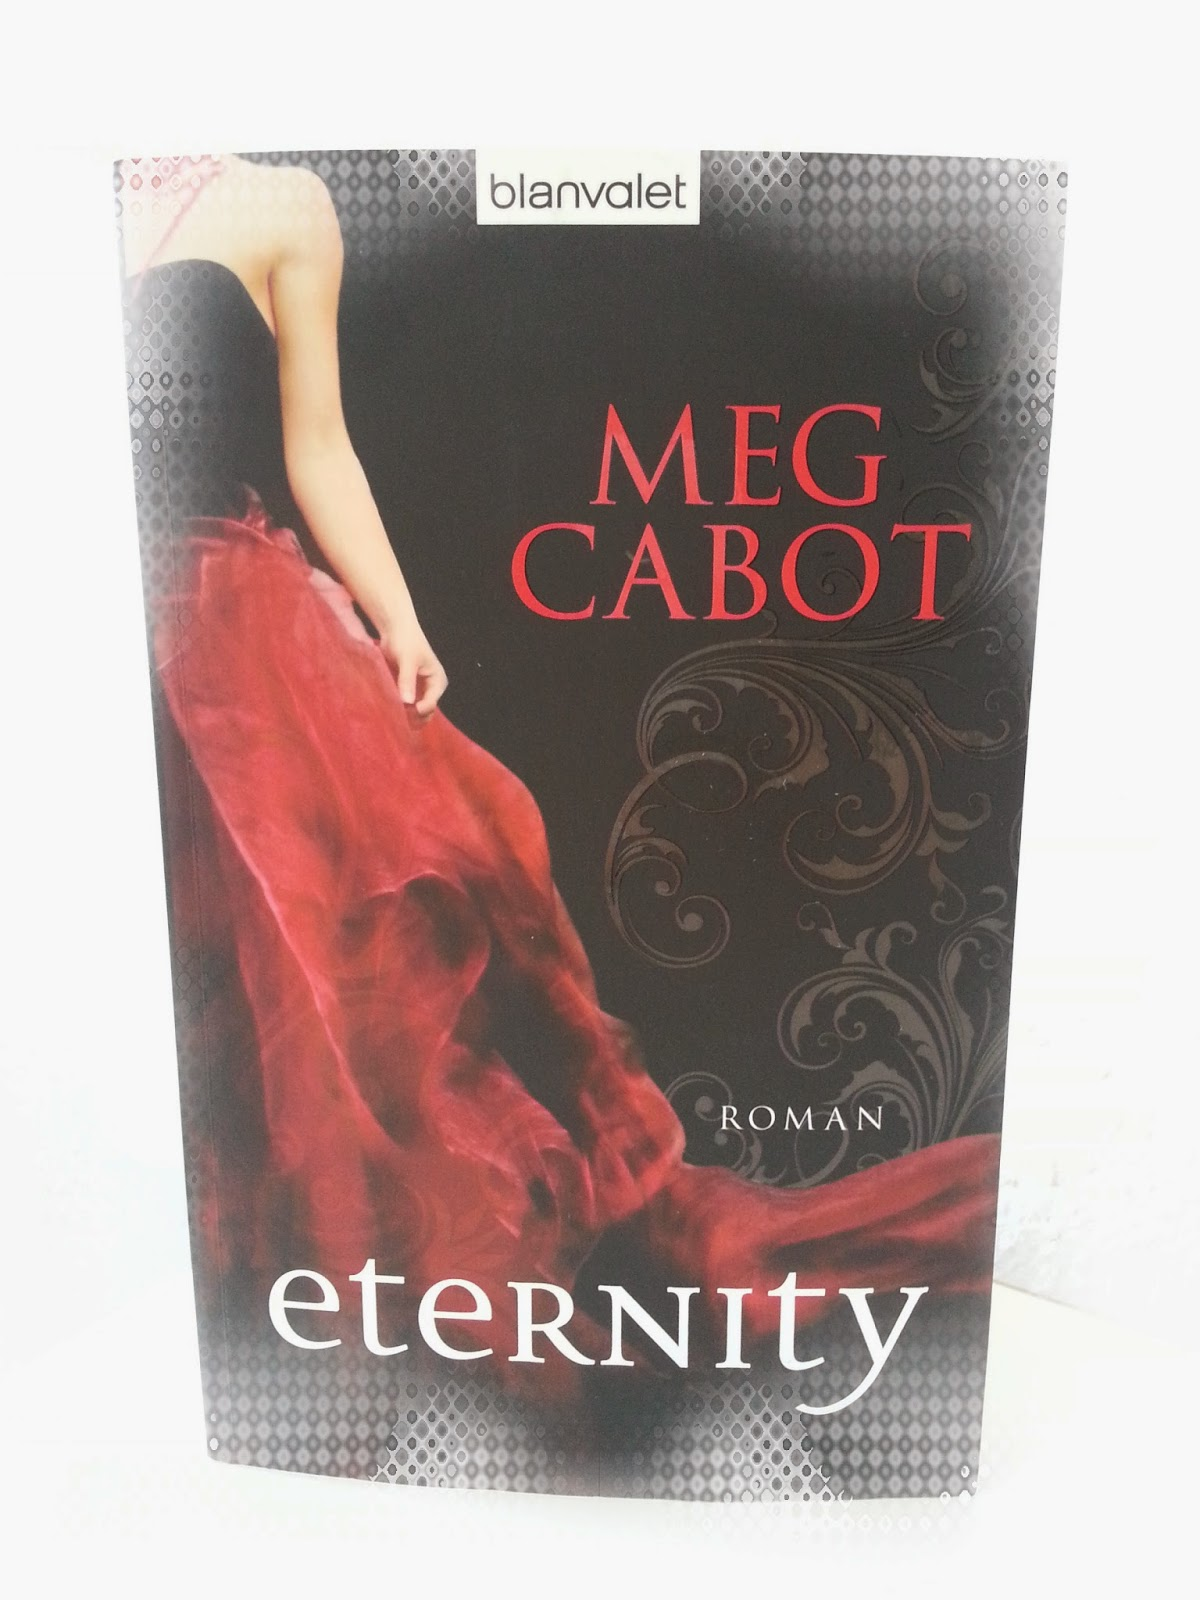 http://www.amazon.de/Eternity-Roman-Meg-Cabot/dp/3442379296/ref=sr_1_1_bnp_1_pap?s=books&ie=UTF8&qid=1399921796&sr=1-1&keywords=eternity